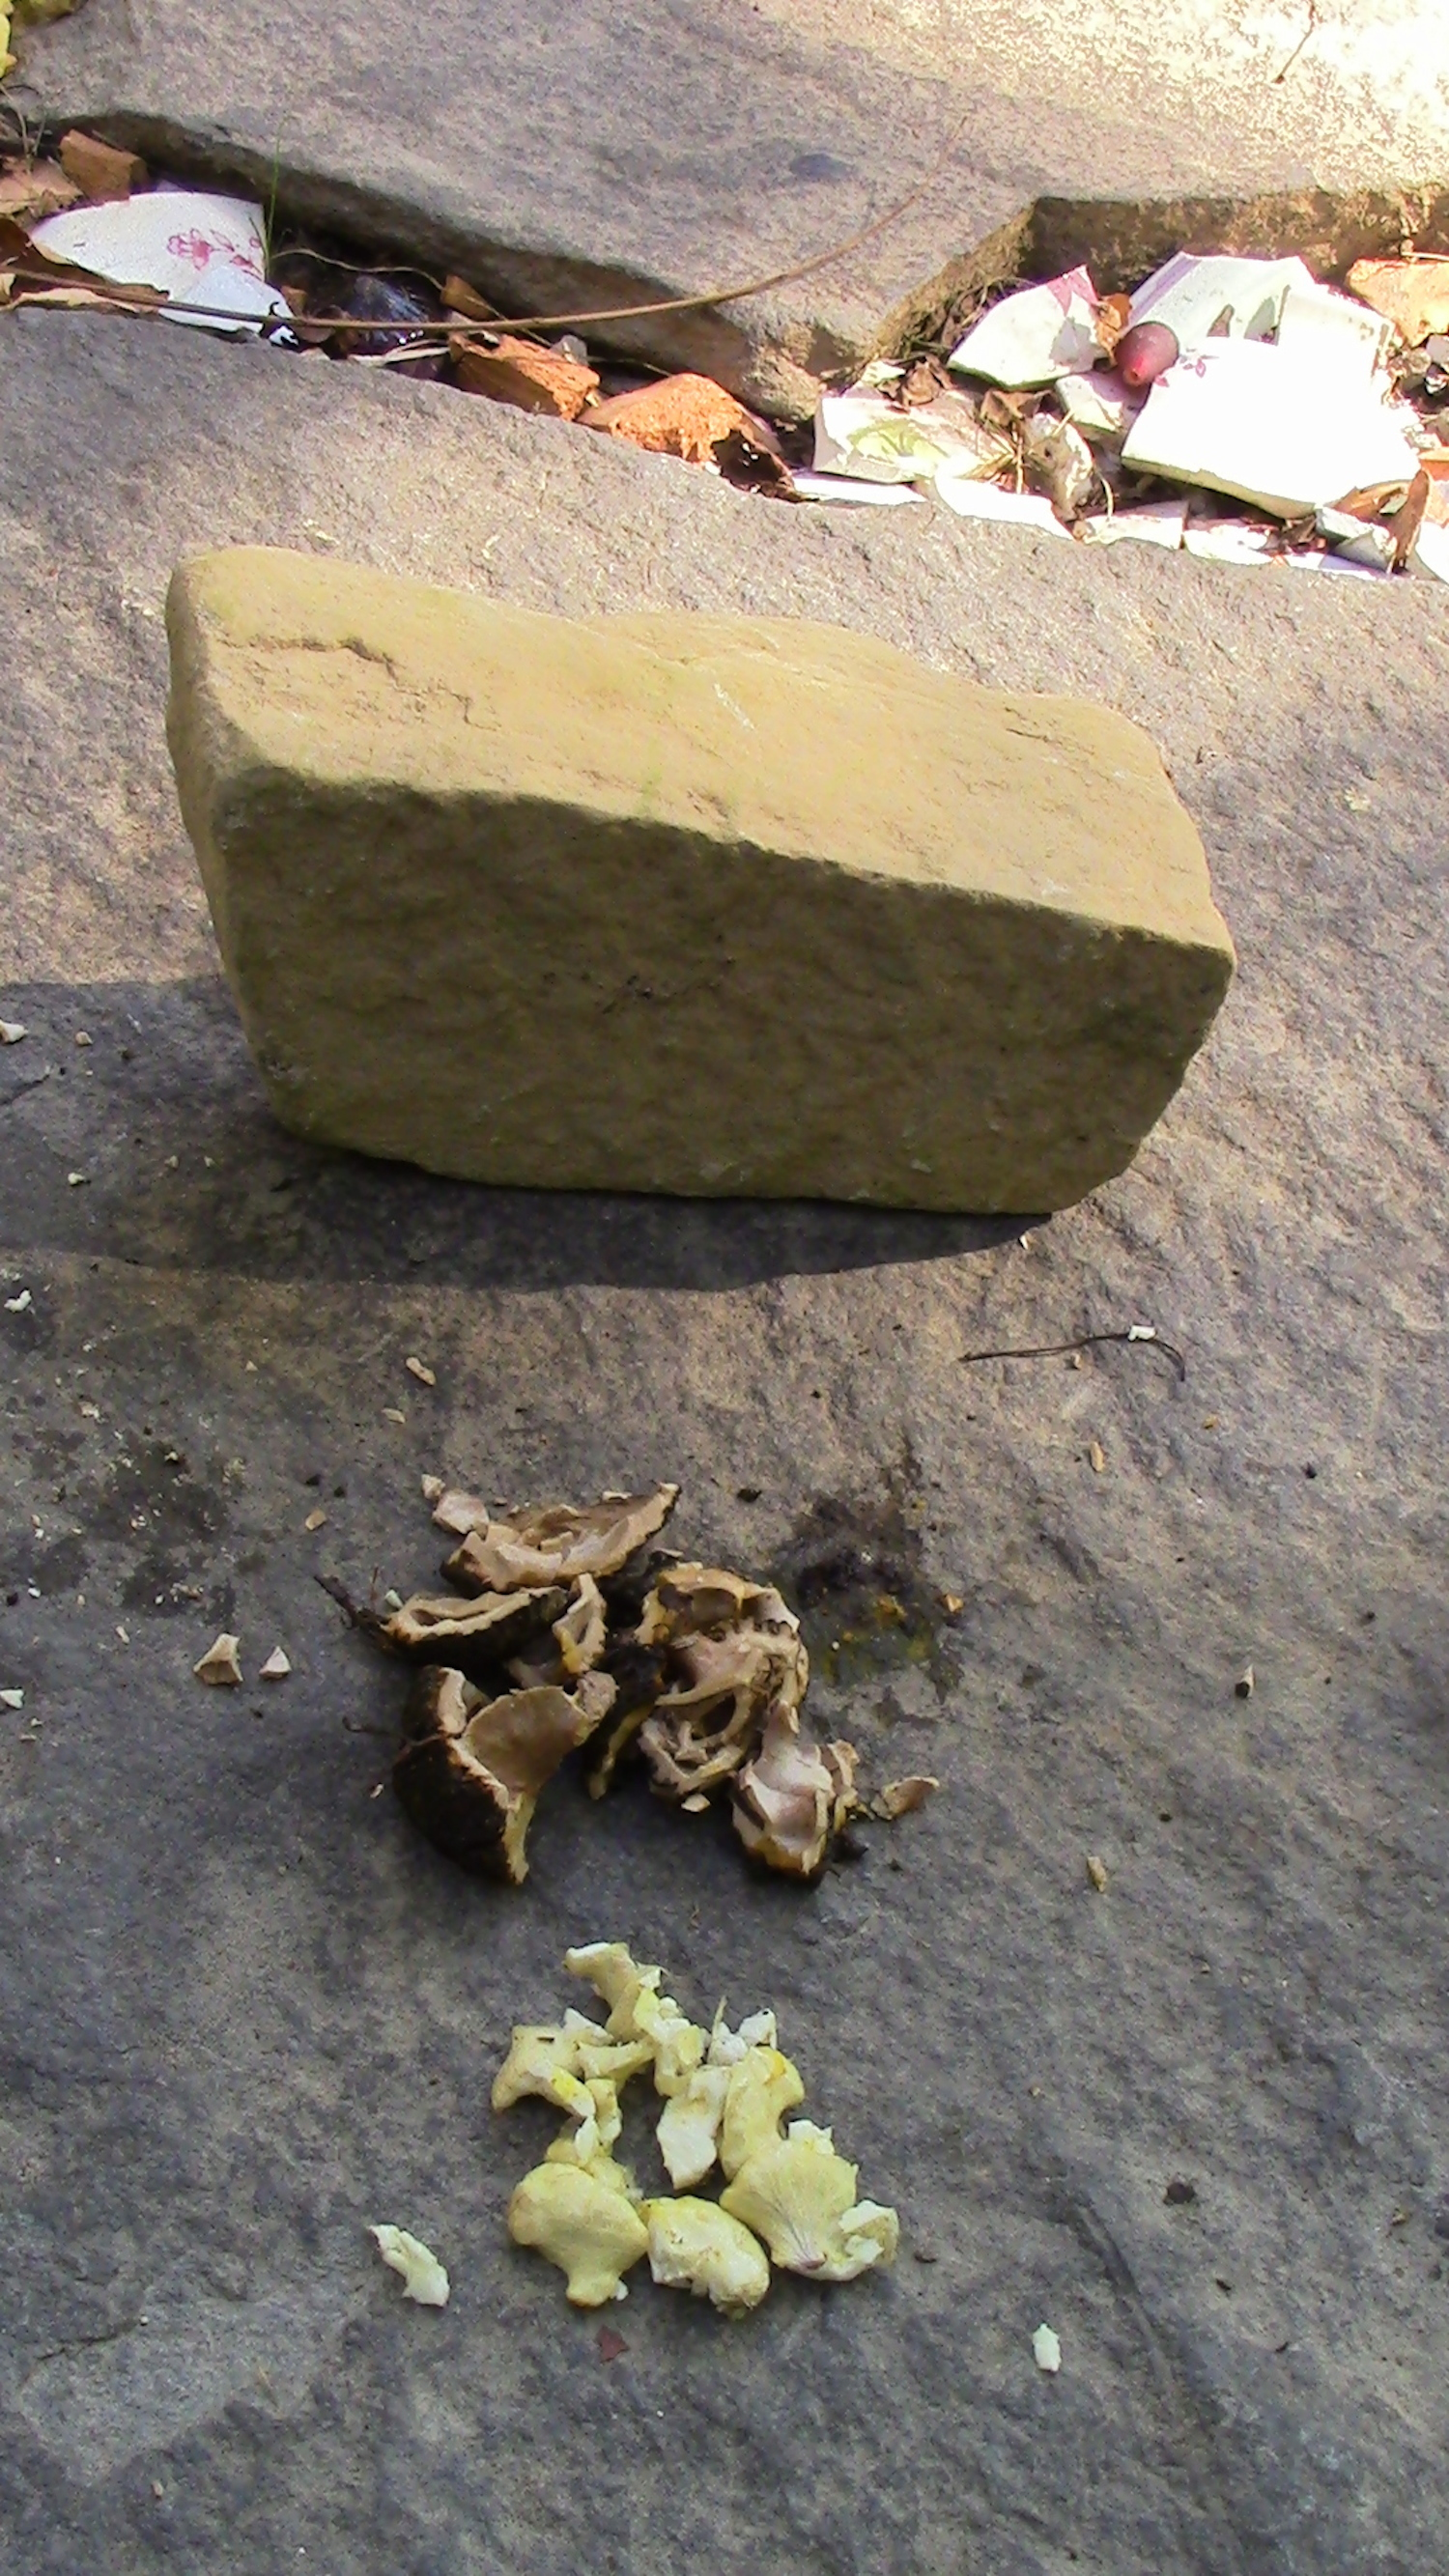 Stone for cracking; nut shell remnants (to compost); and nut meat to eat.